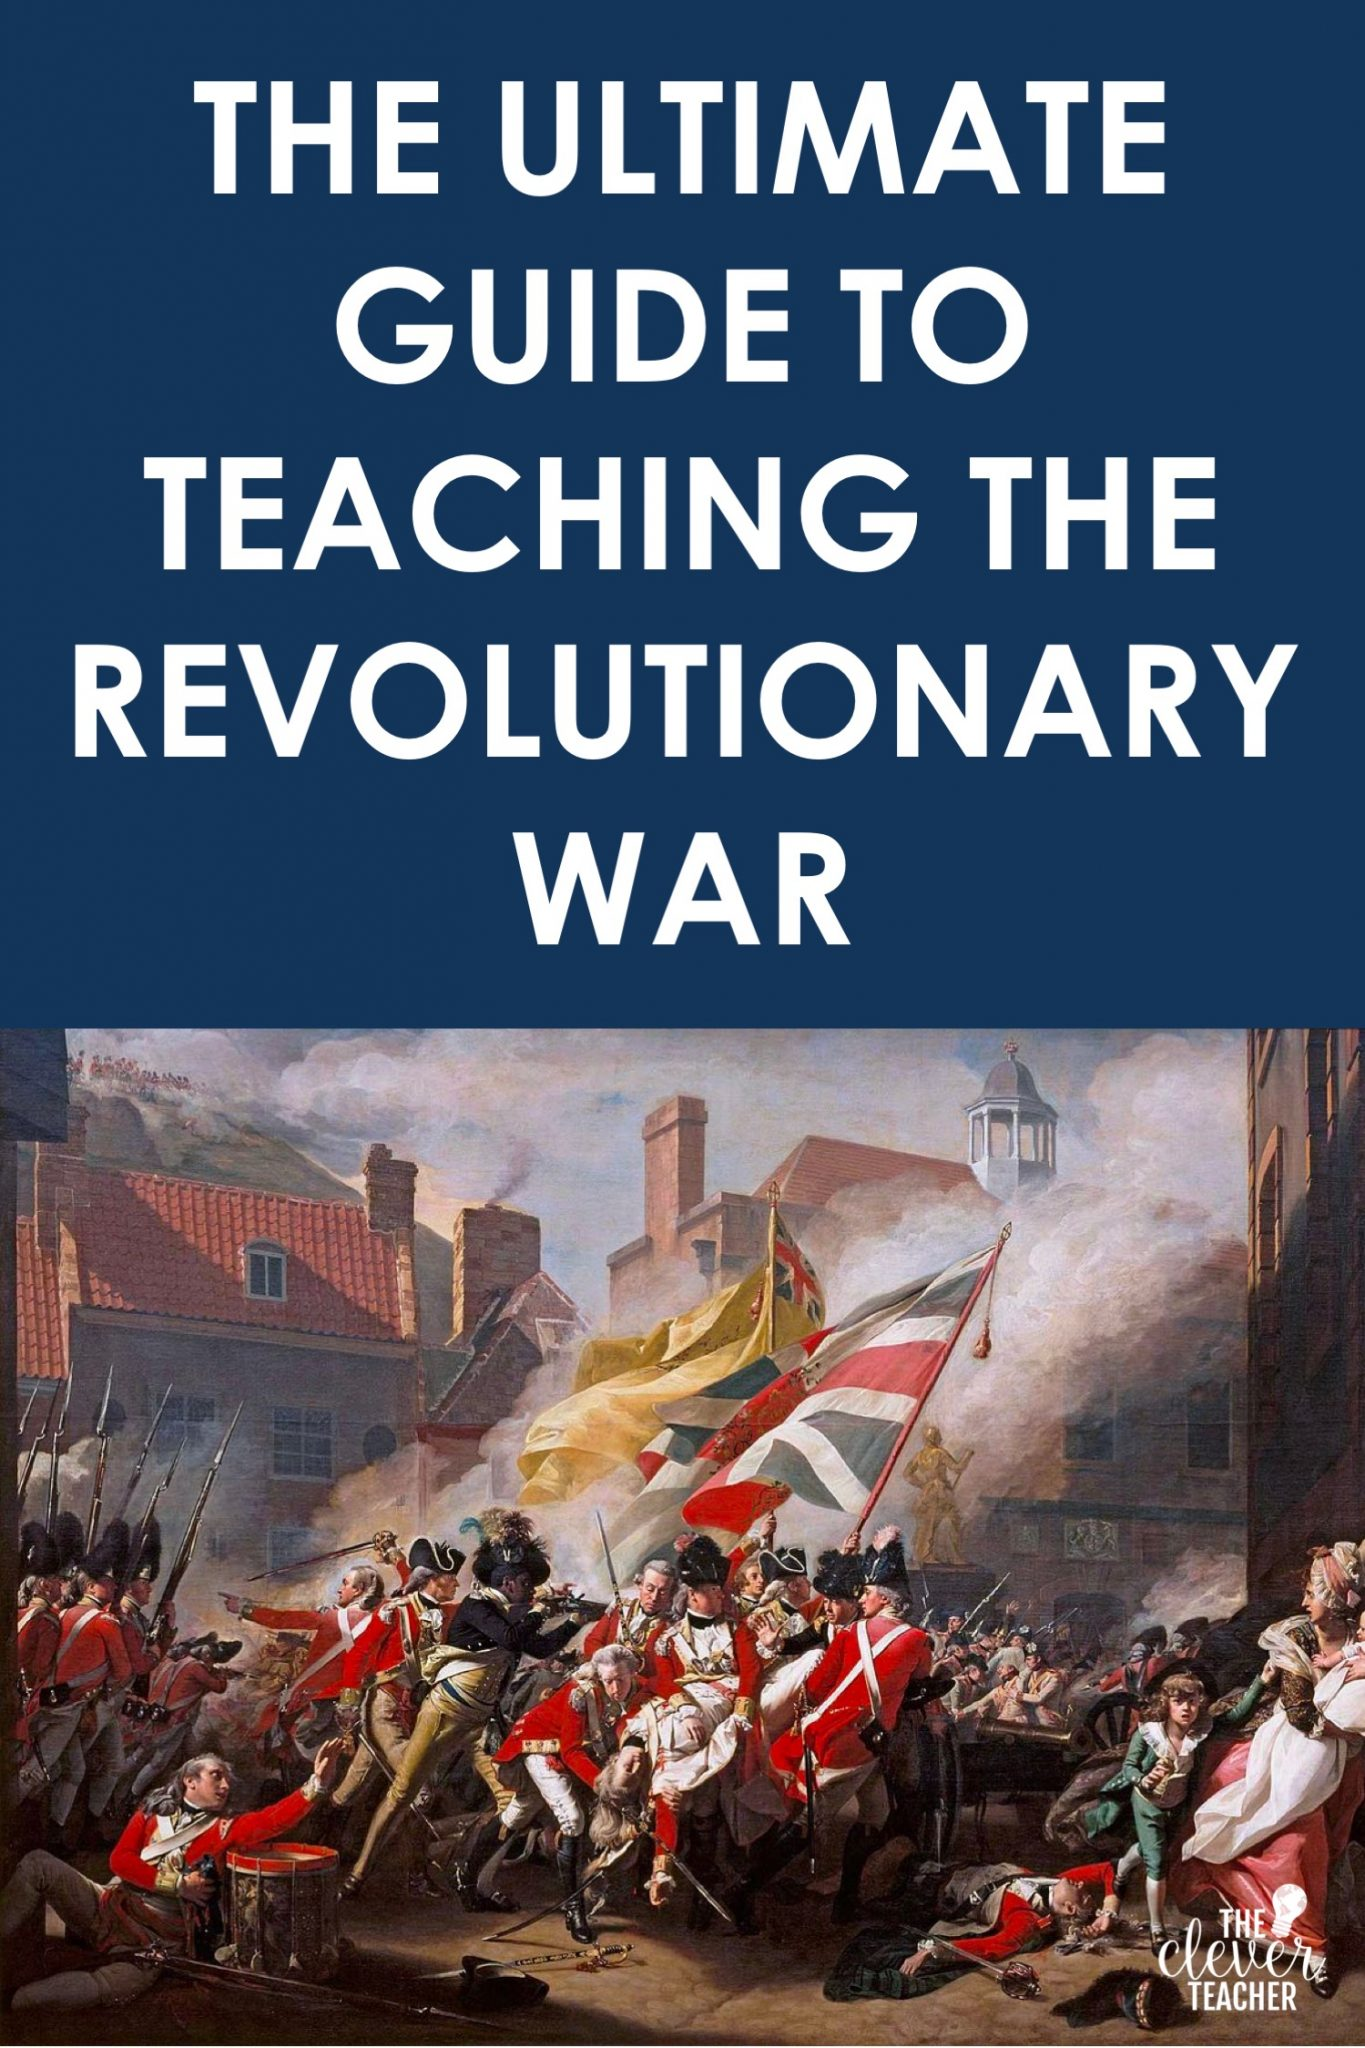 hight resolution of The Ultimate Guide to Teaching the Revolutionary War   The Clever Teacher